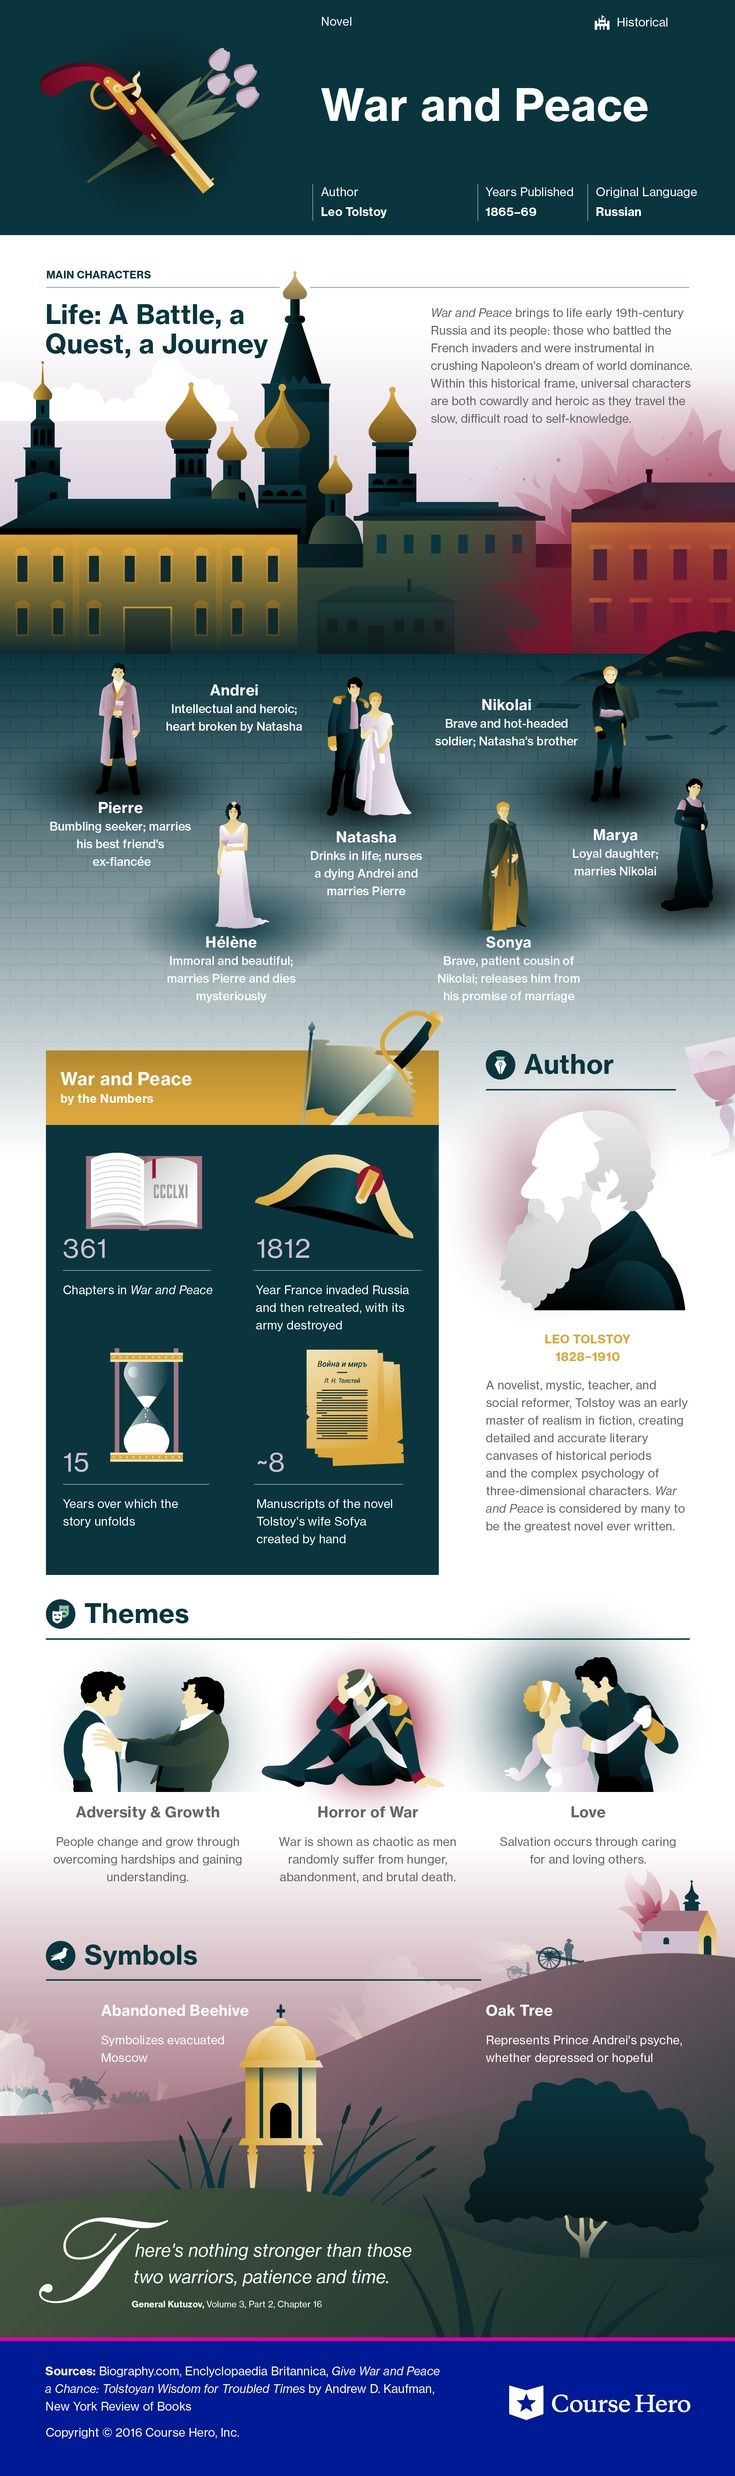 best images about infographic literatura the study guide for leo tolstoy s war and peace including chapter summary character analysis and more learn all about war and peace ask questions